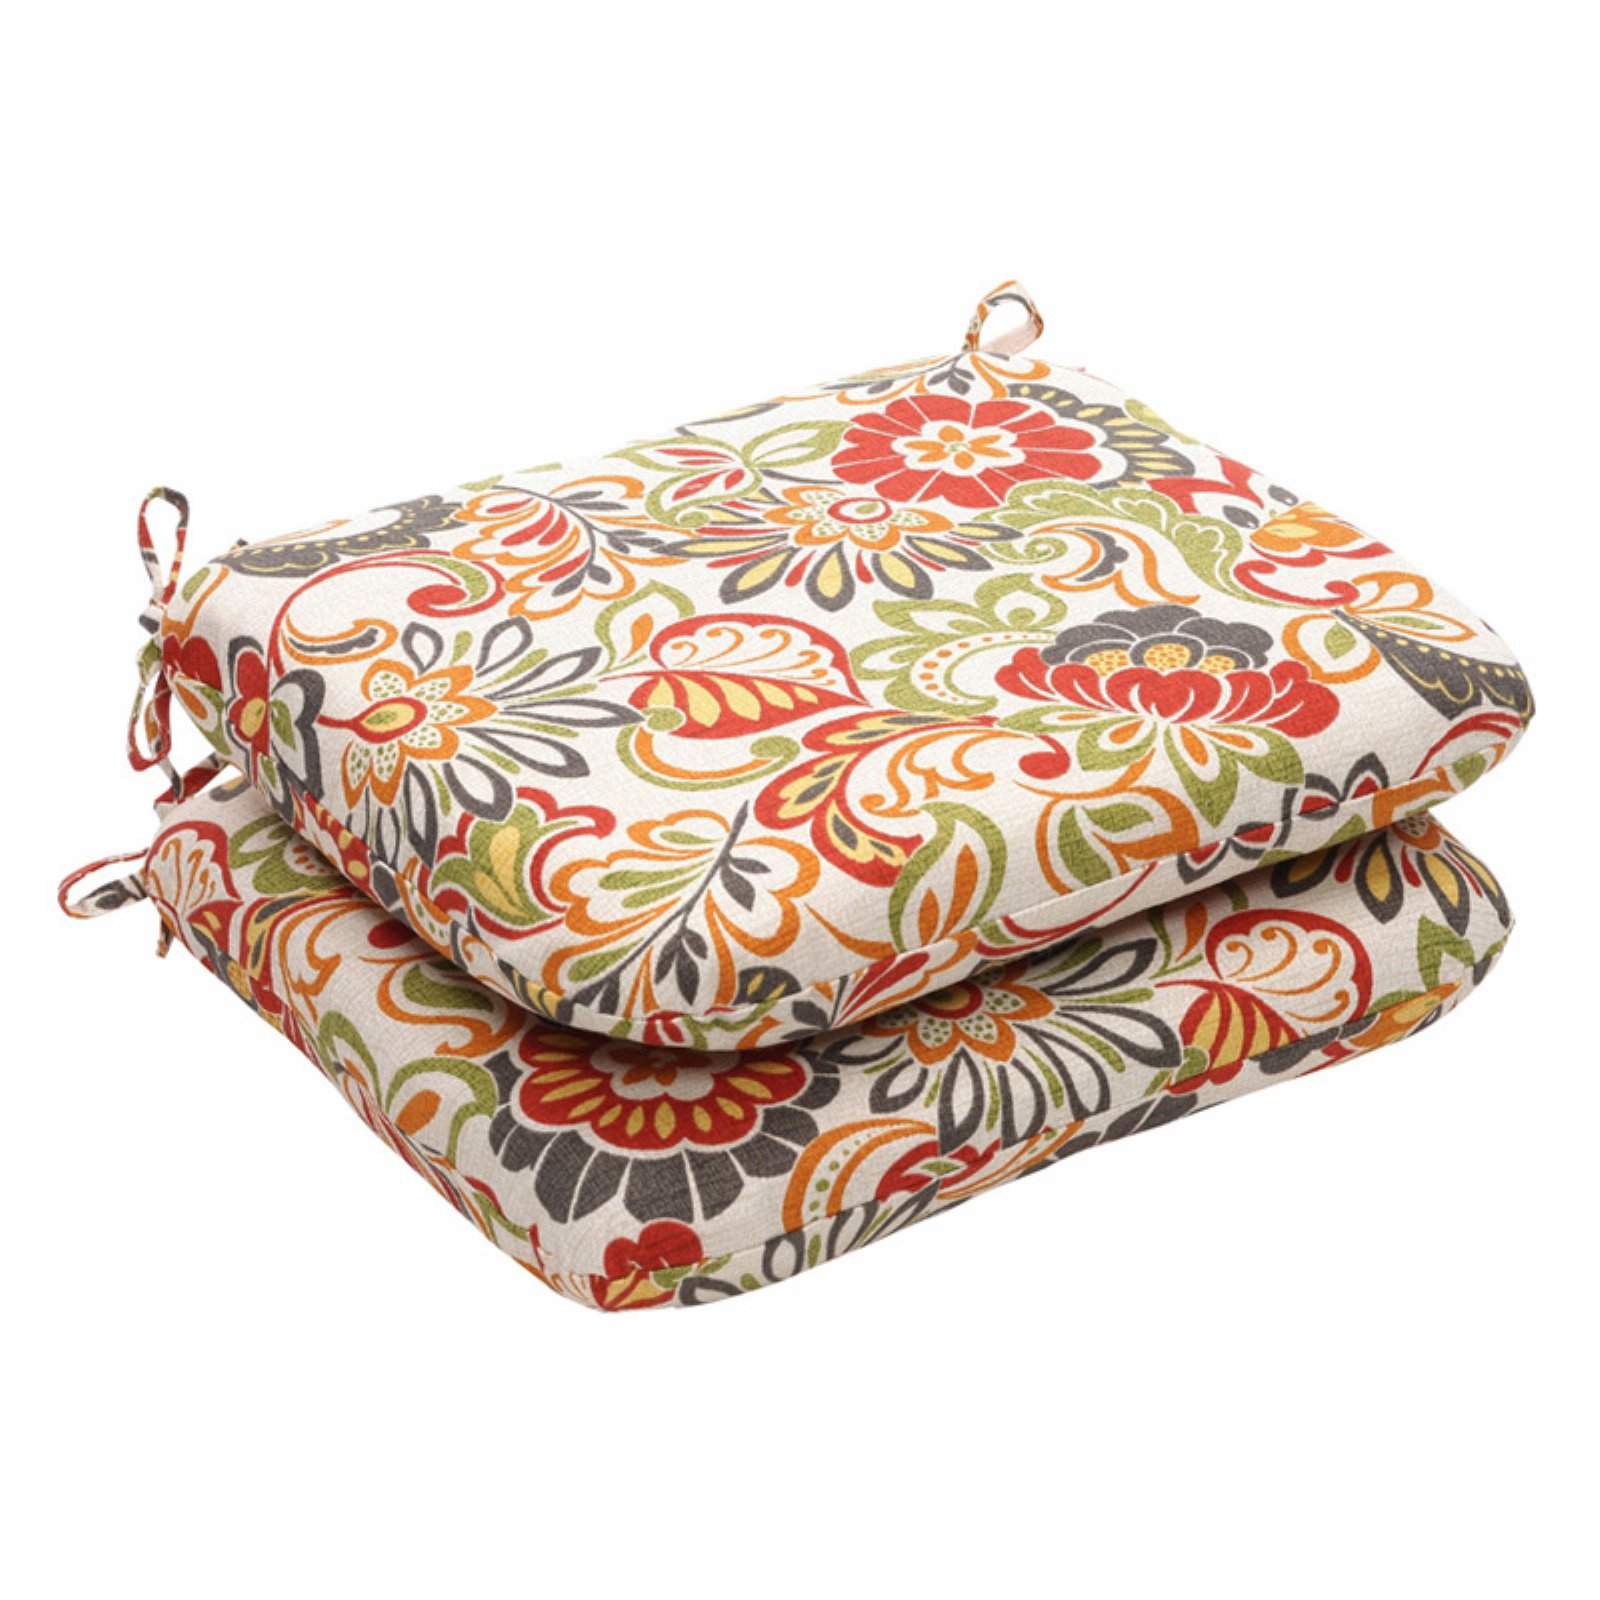 Pillow Perfect Floral Outdoor Seat Cushion - 18.5 x 15.5 x 3 in. - Set of 2